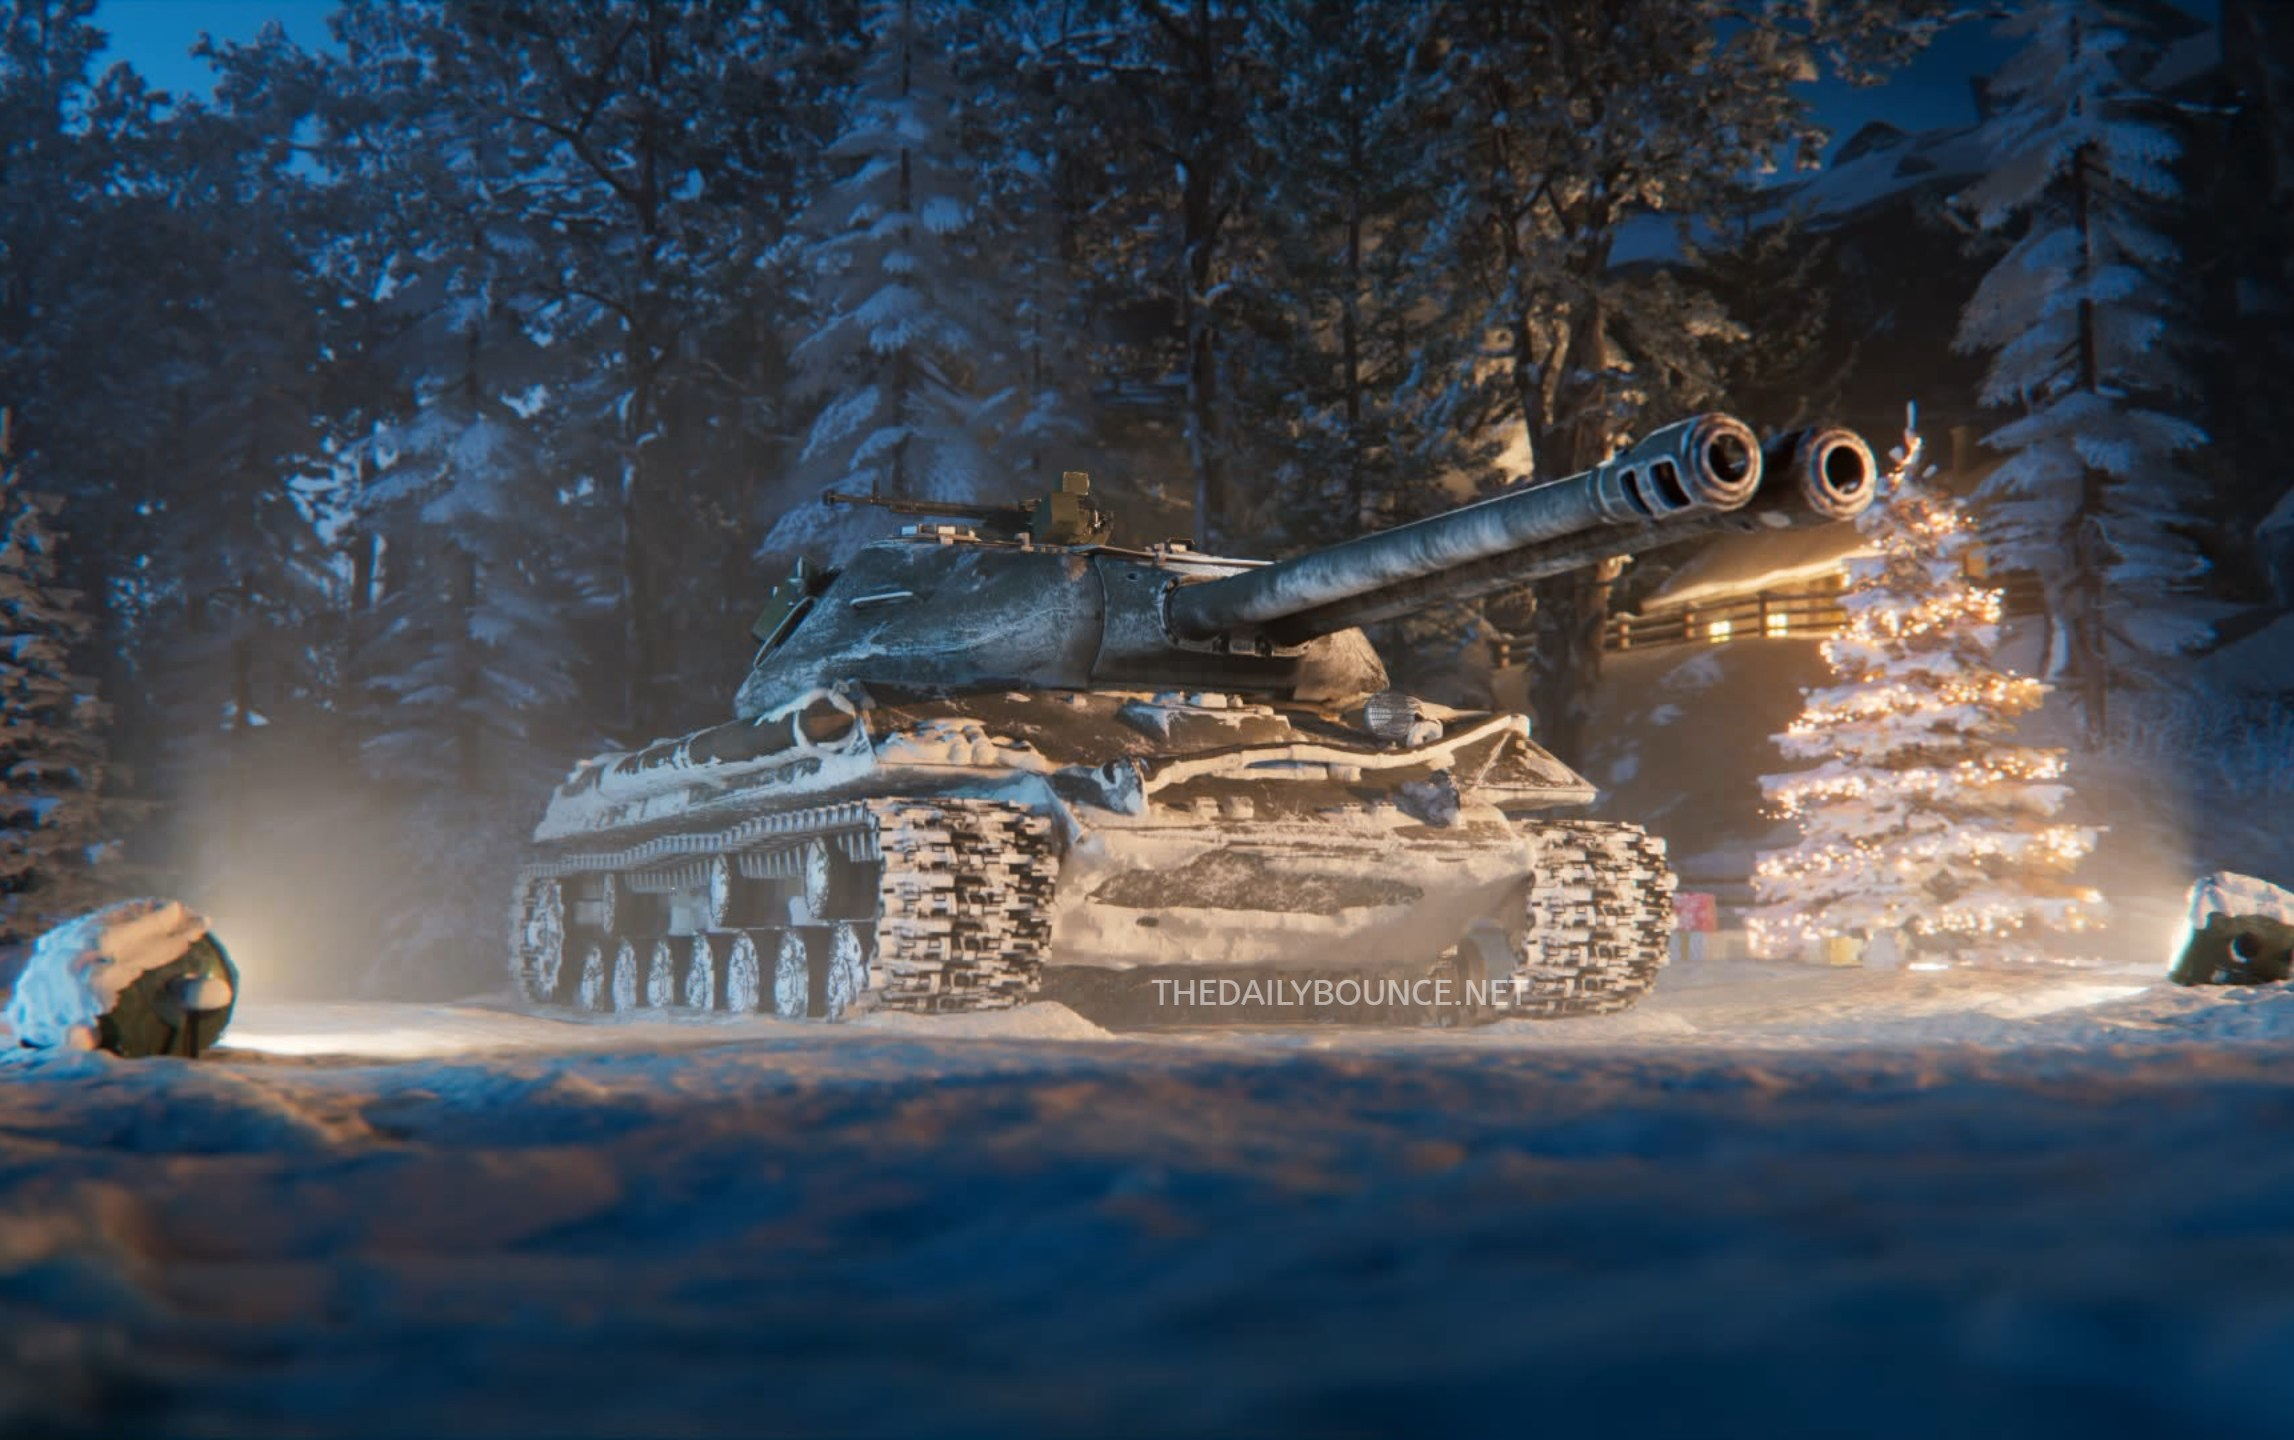 Wot 2020 Christmas Skins World of Tanks Holiday Ops 2020: Lootboxes Tanks & Styles Confirmed!